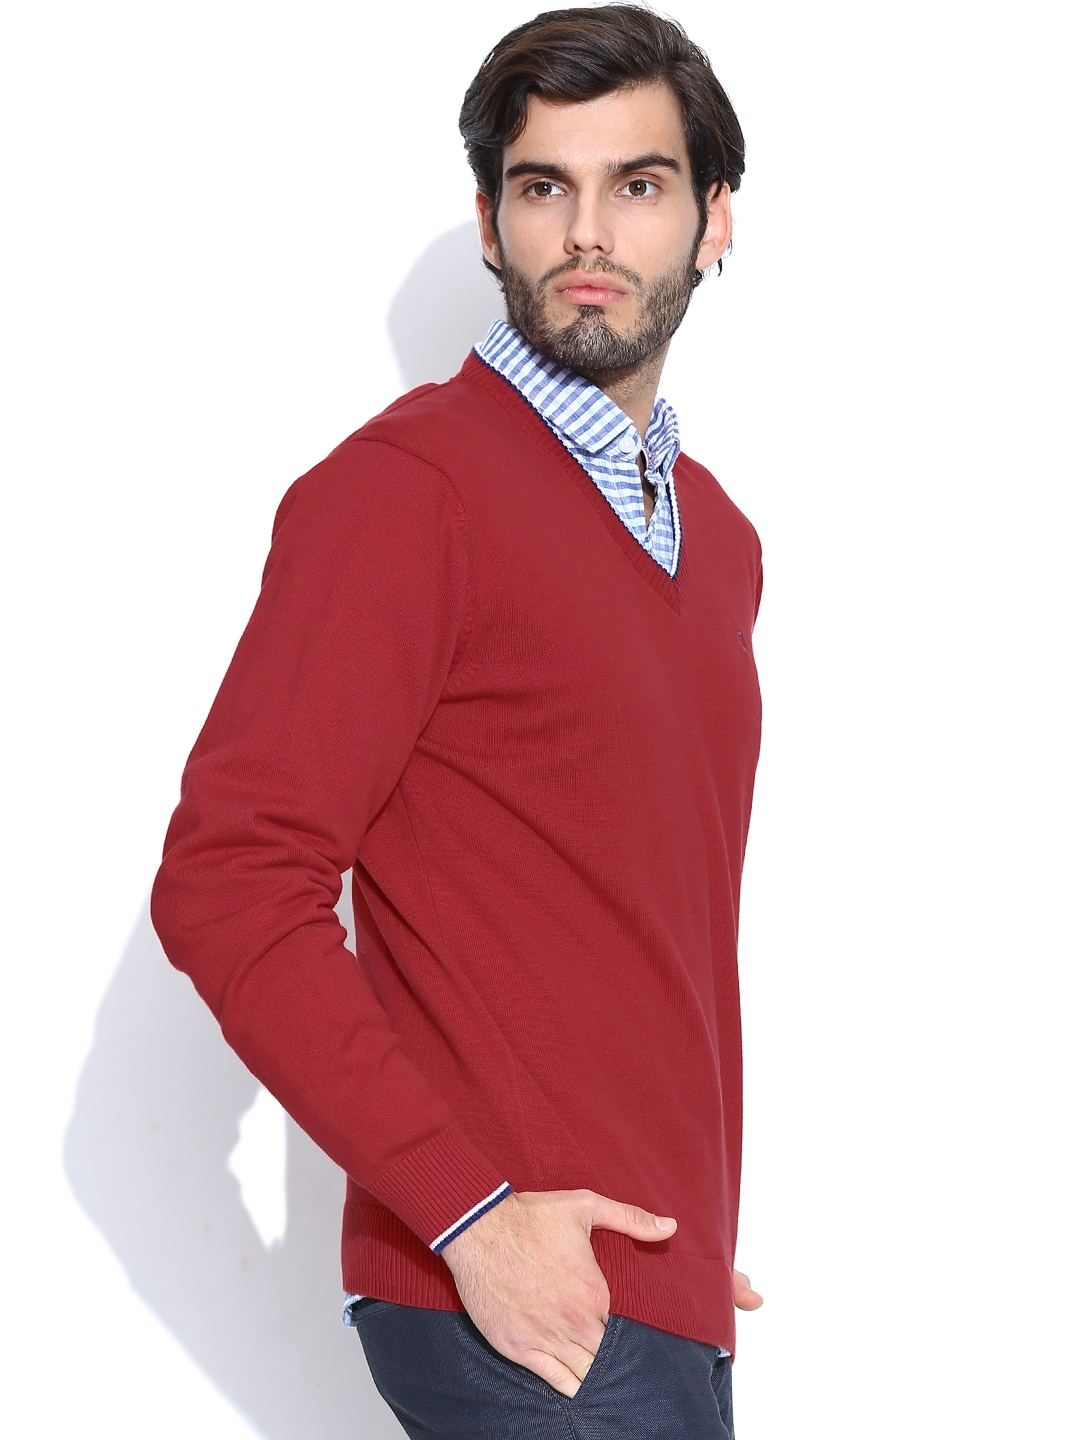 Izod Sweater Topwear - Buy Izod Sweater Topwear online in India